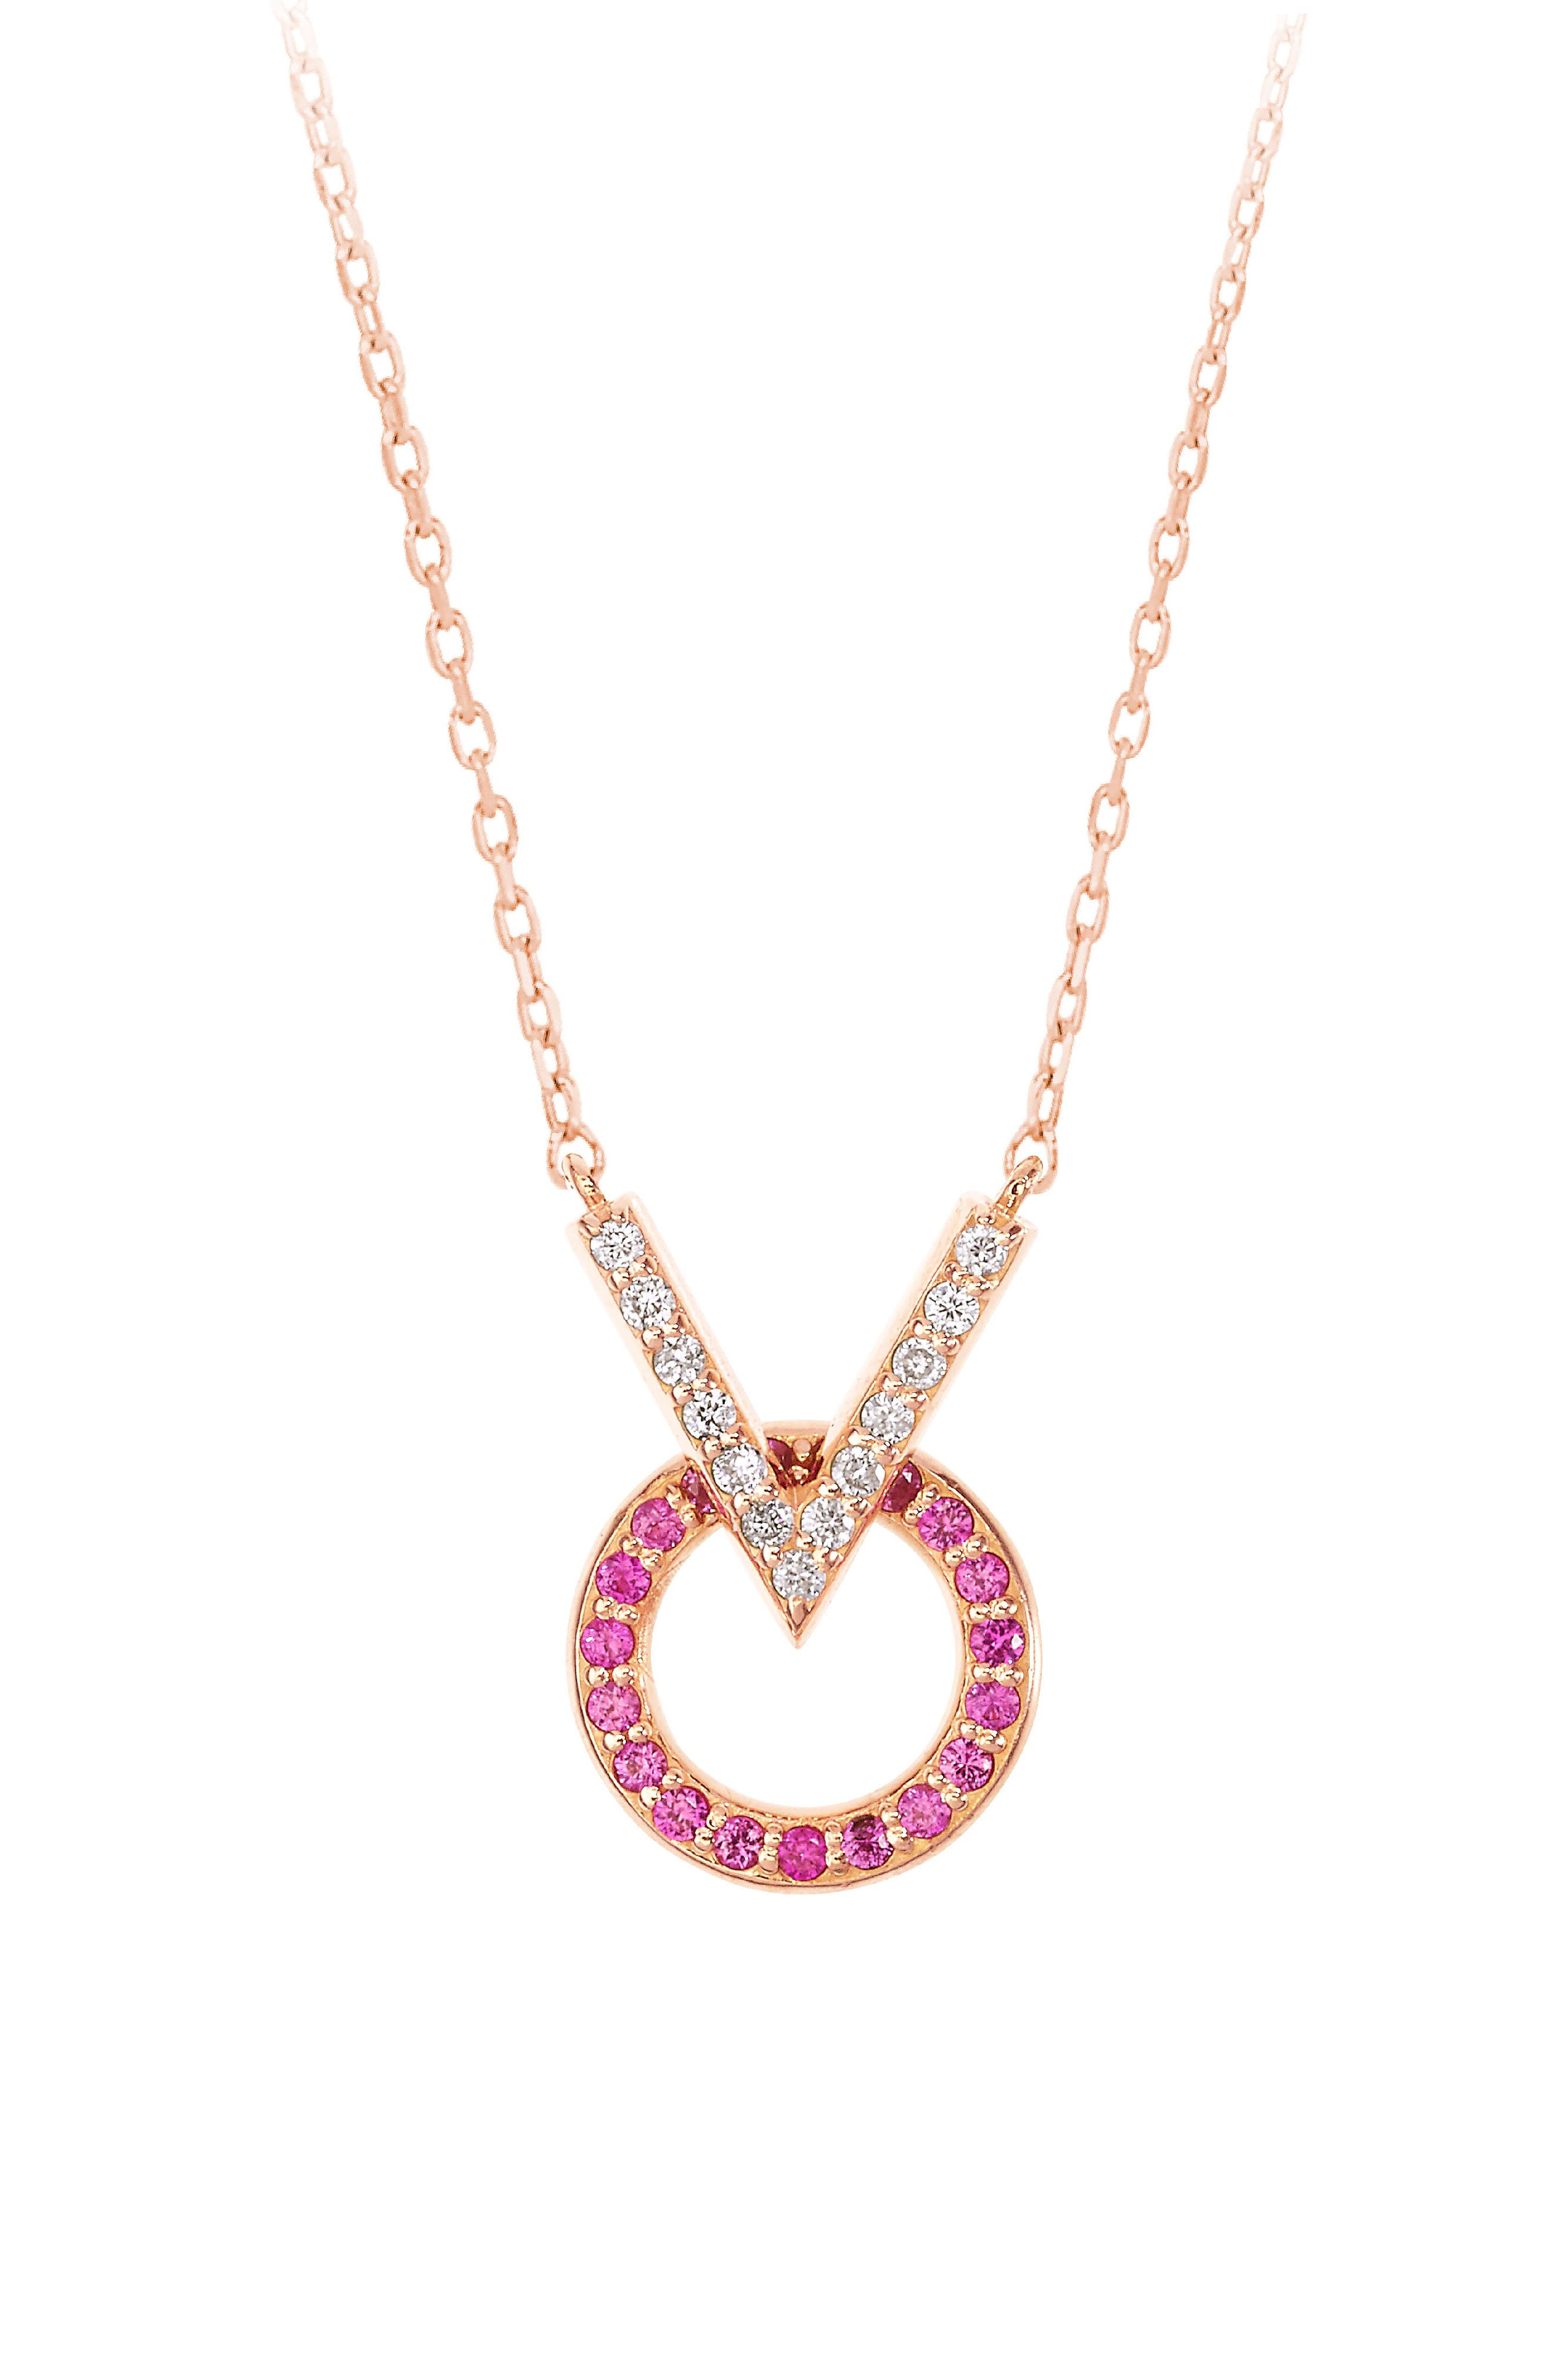 Baby Memphis V Round Diamond & Pink Sapphire Necklace,                         Main,                         color, Rose Gold/ Pink Sapphire